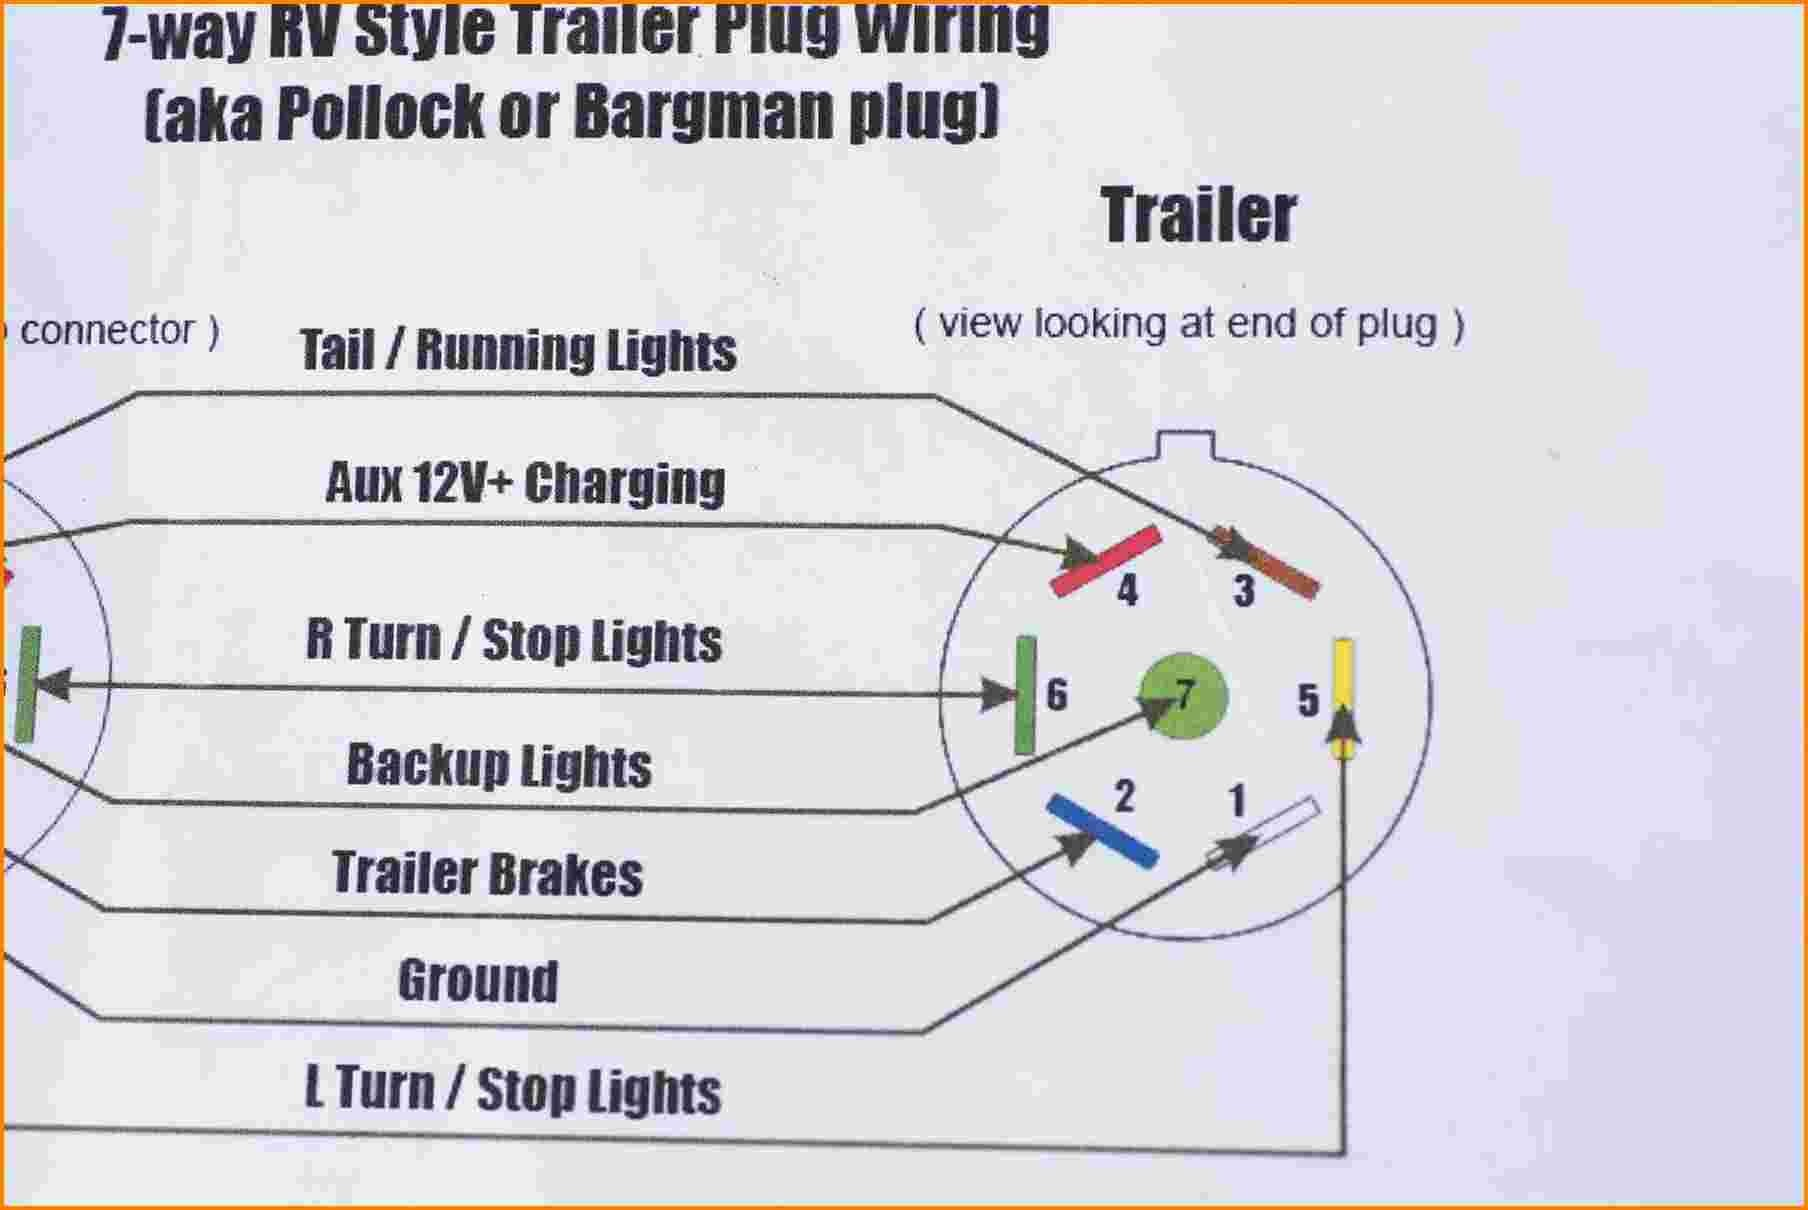 TV_7185] Calico Trailer Wiring Diagram For 7 Pin Connector Free Diagram